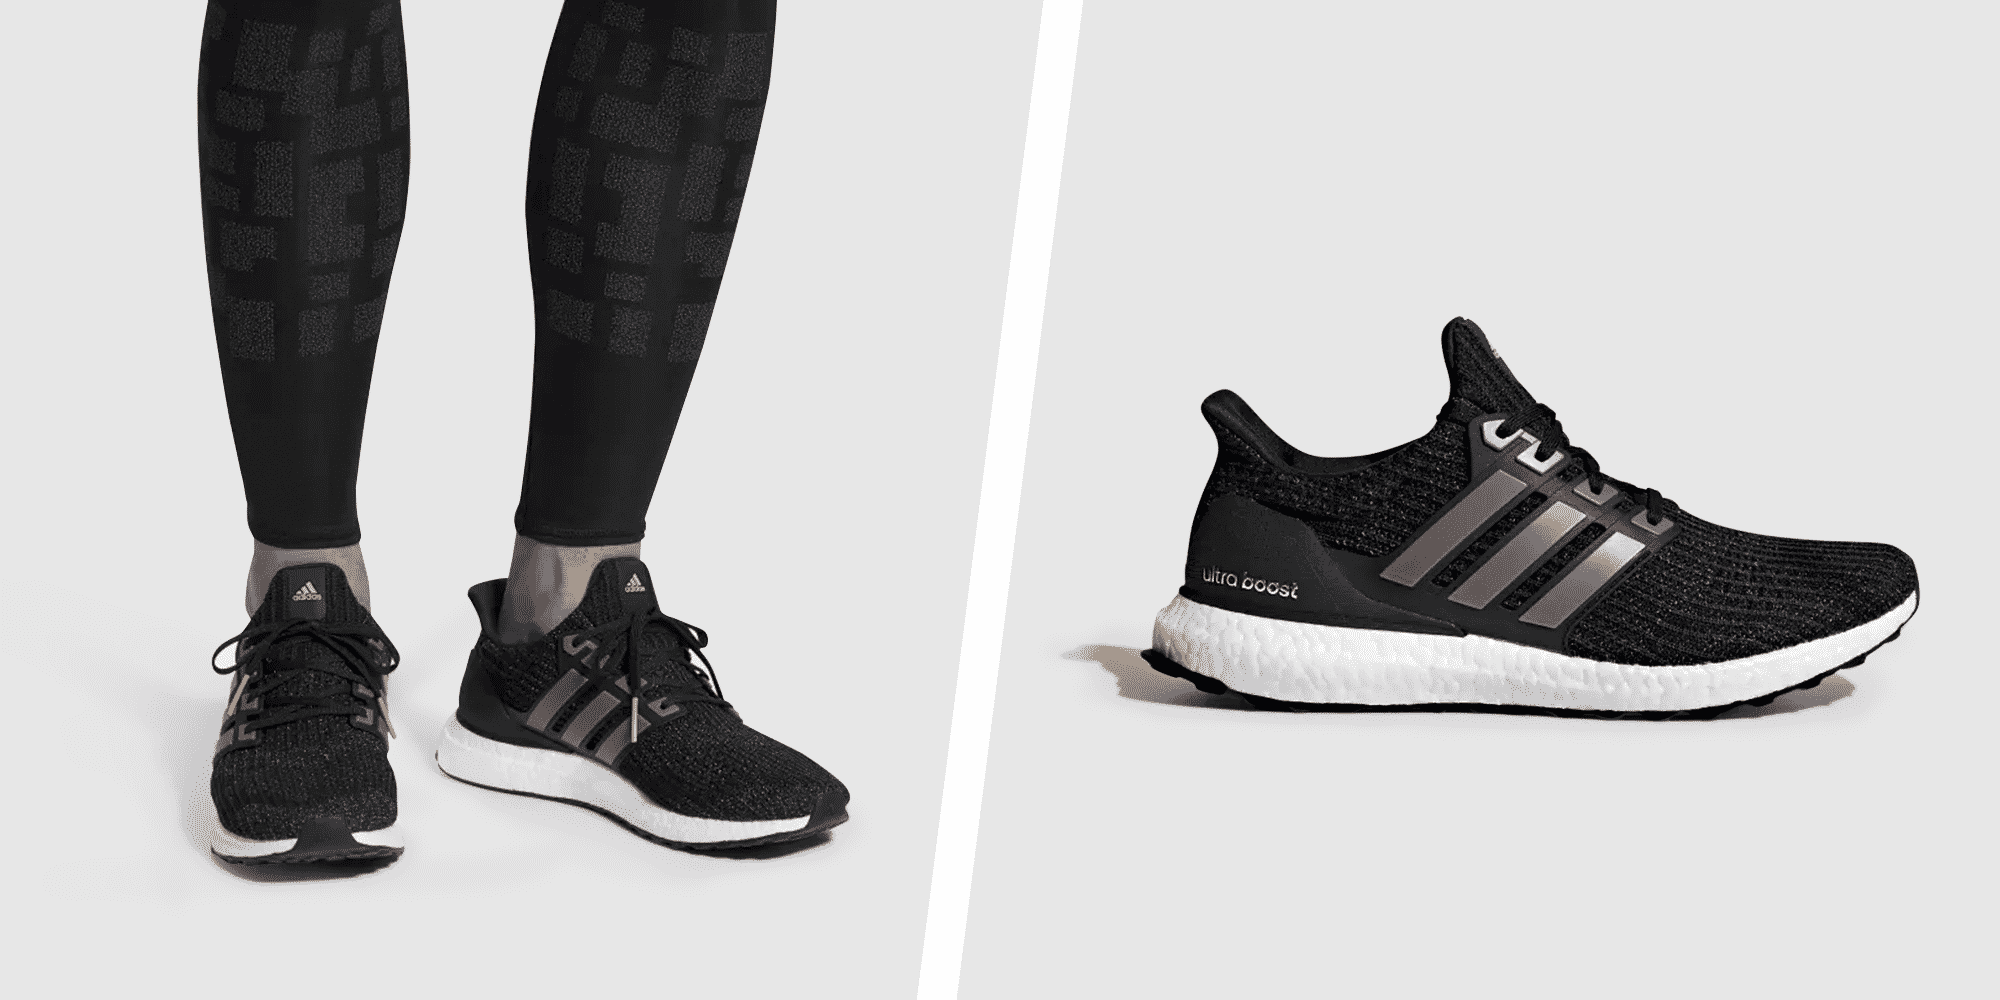 Up to 50% Off Best-Selling Shoes-Adidas Black Friday Big Discount